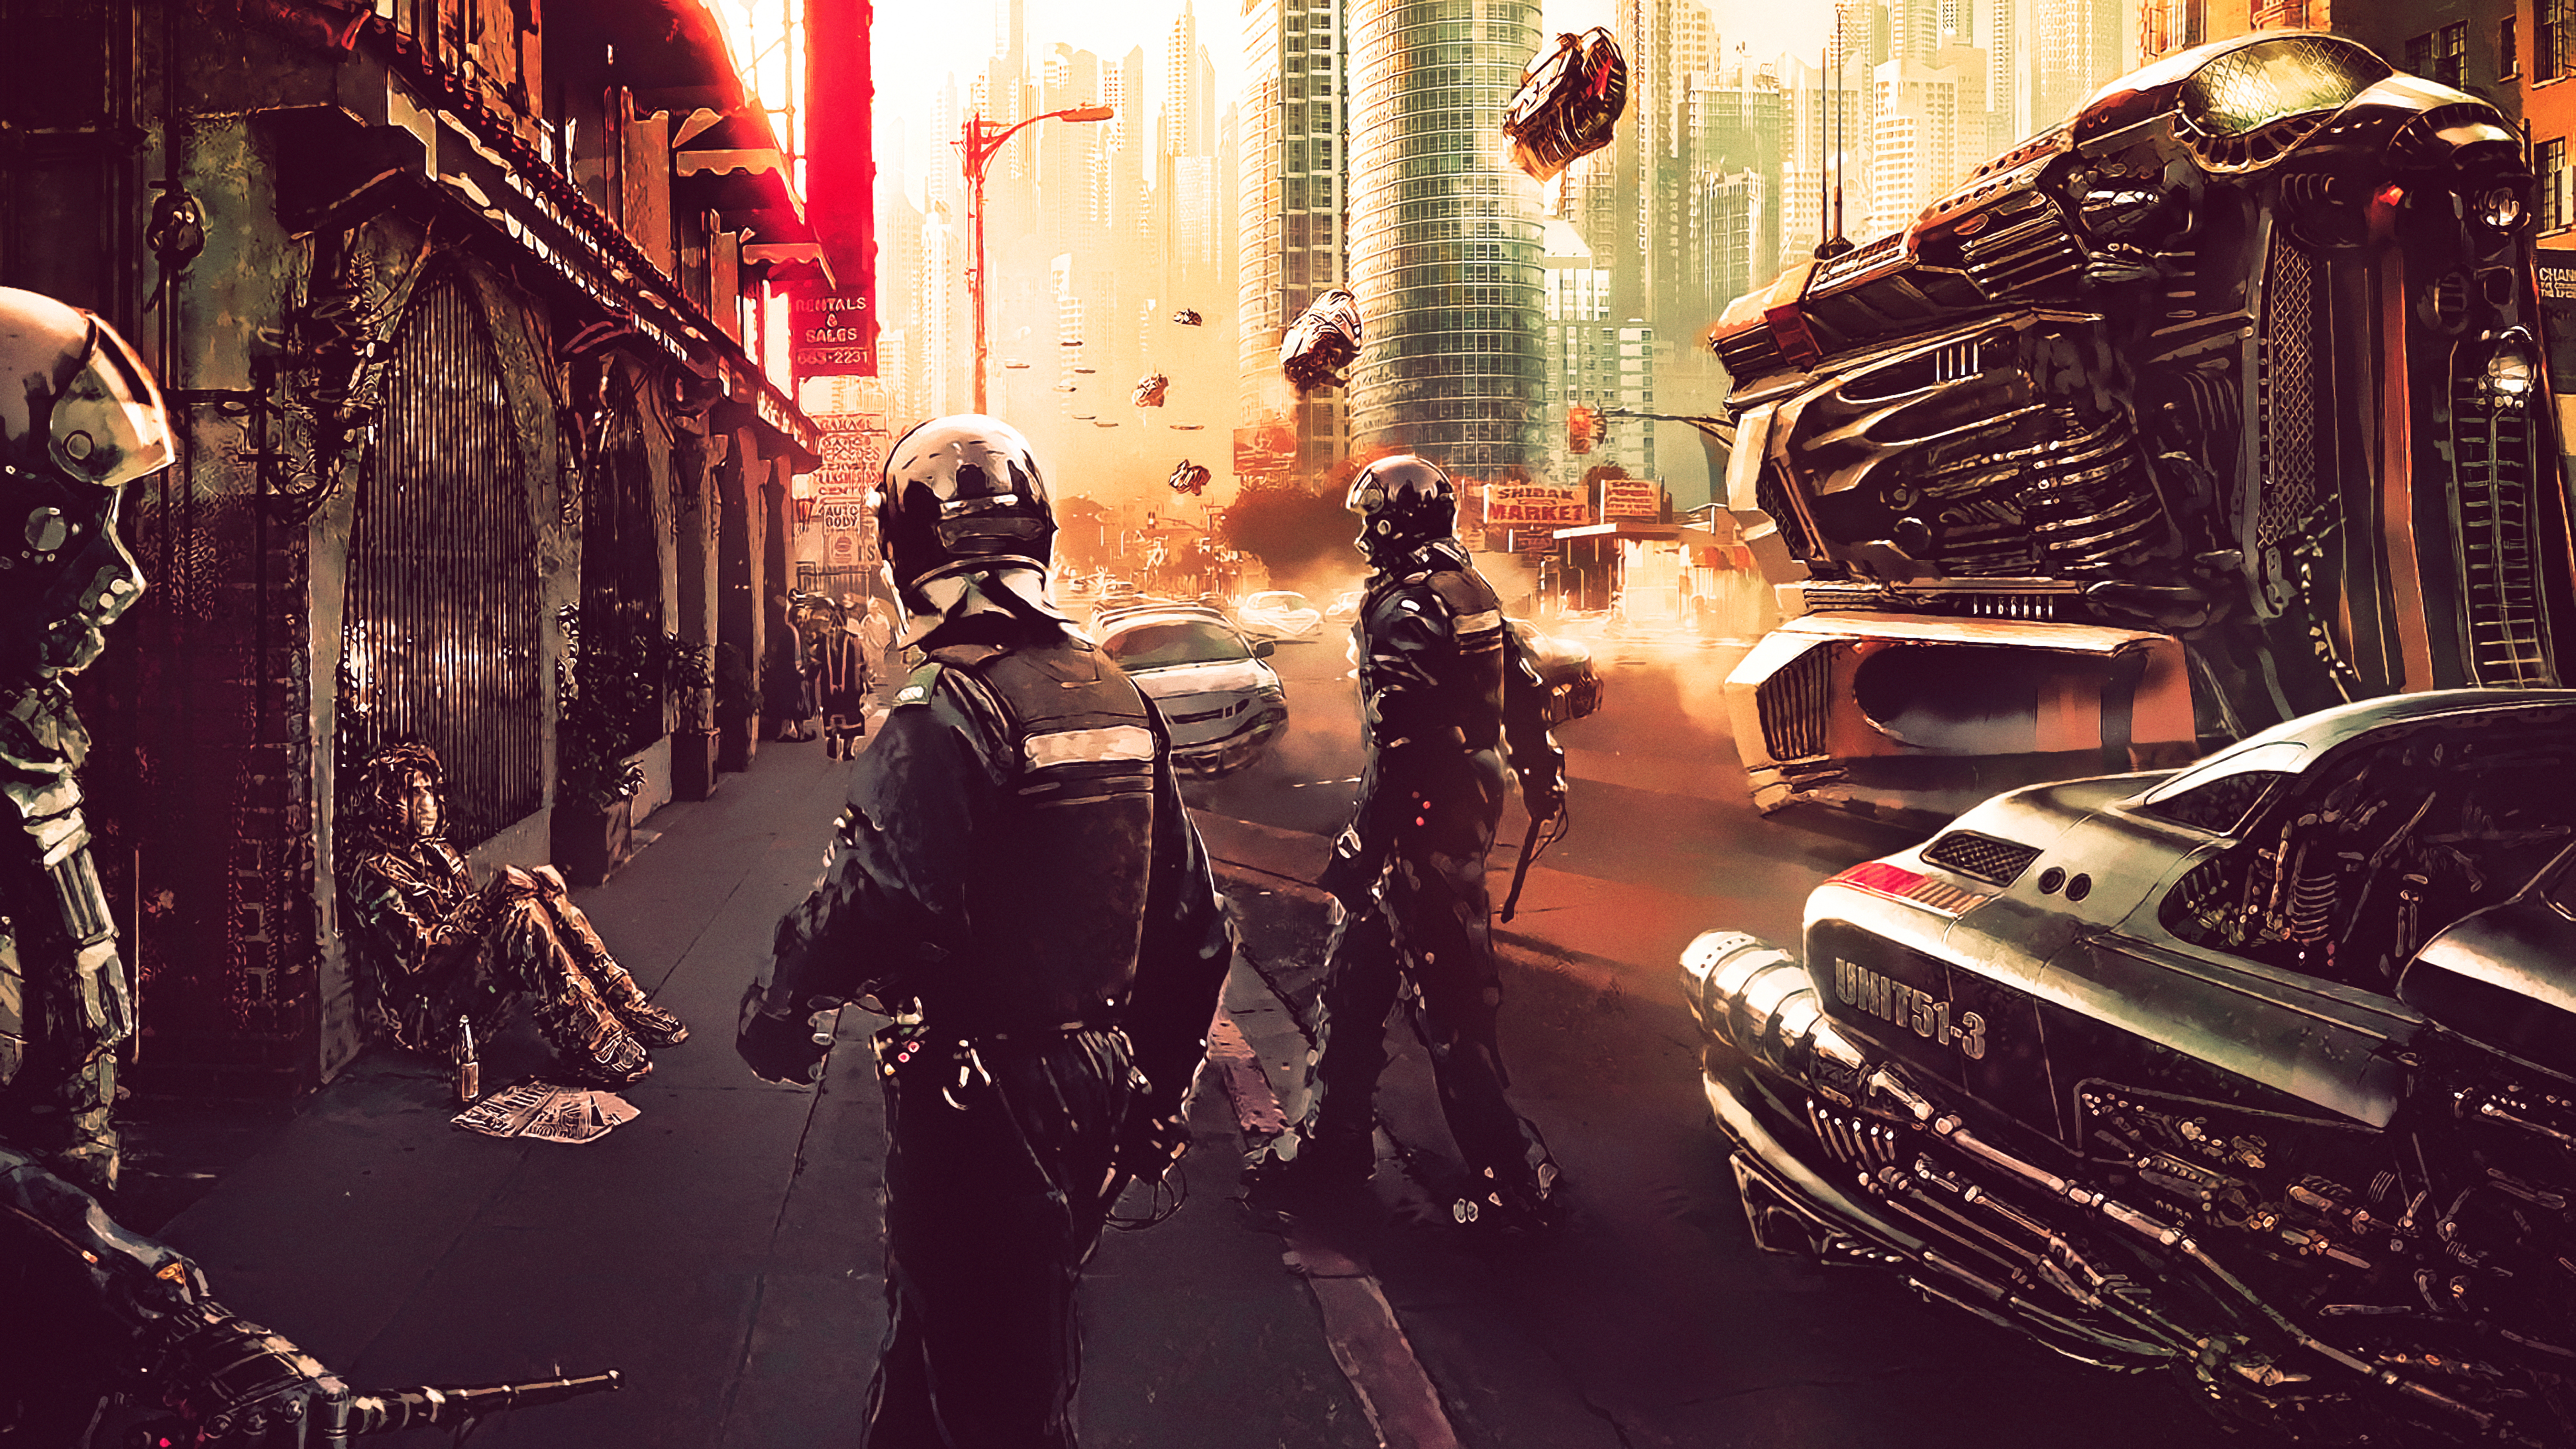 Download Cyberpunk Science Fiction Futuristic City And